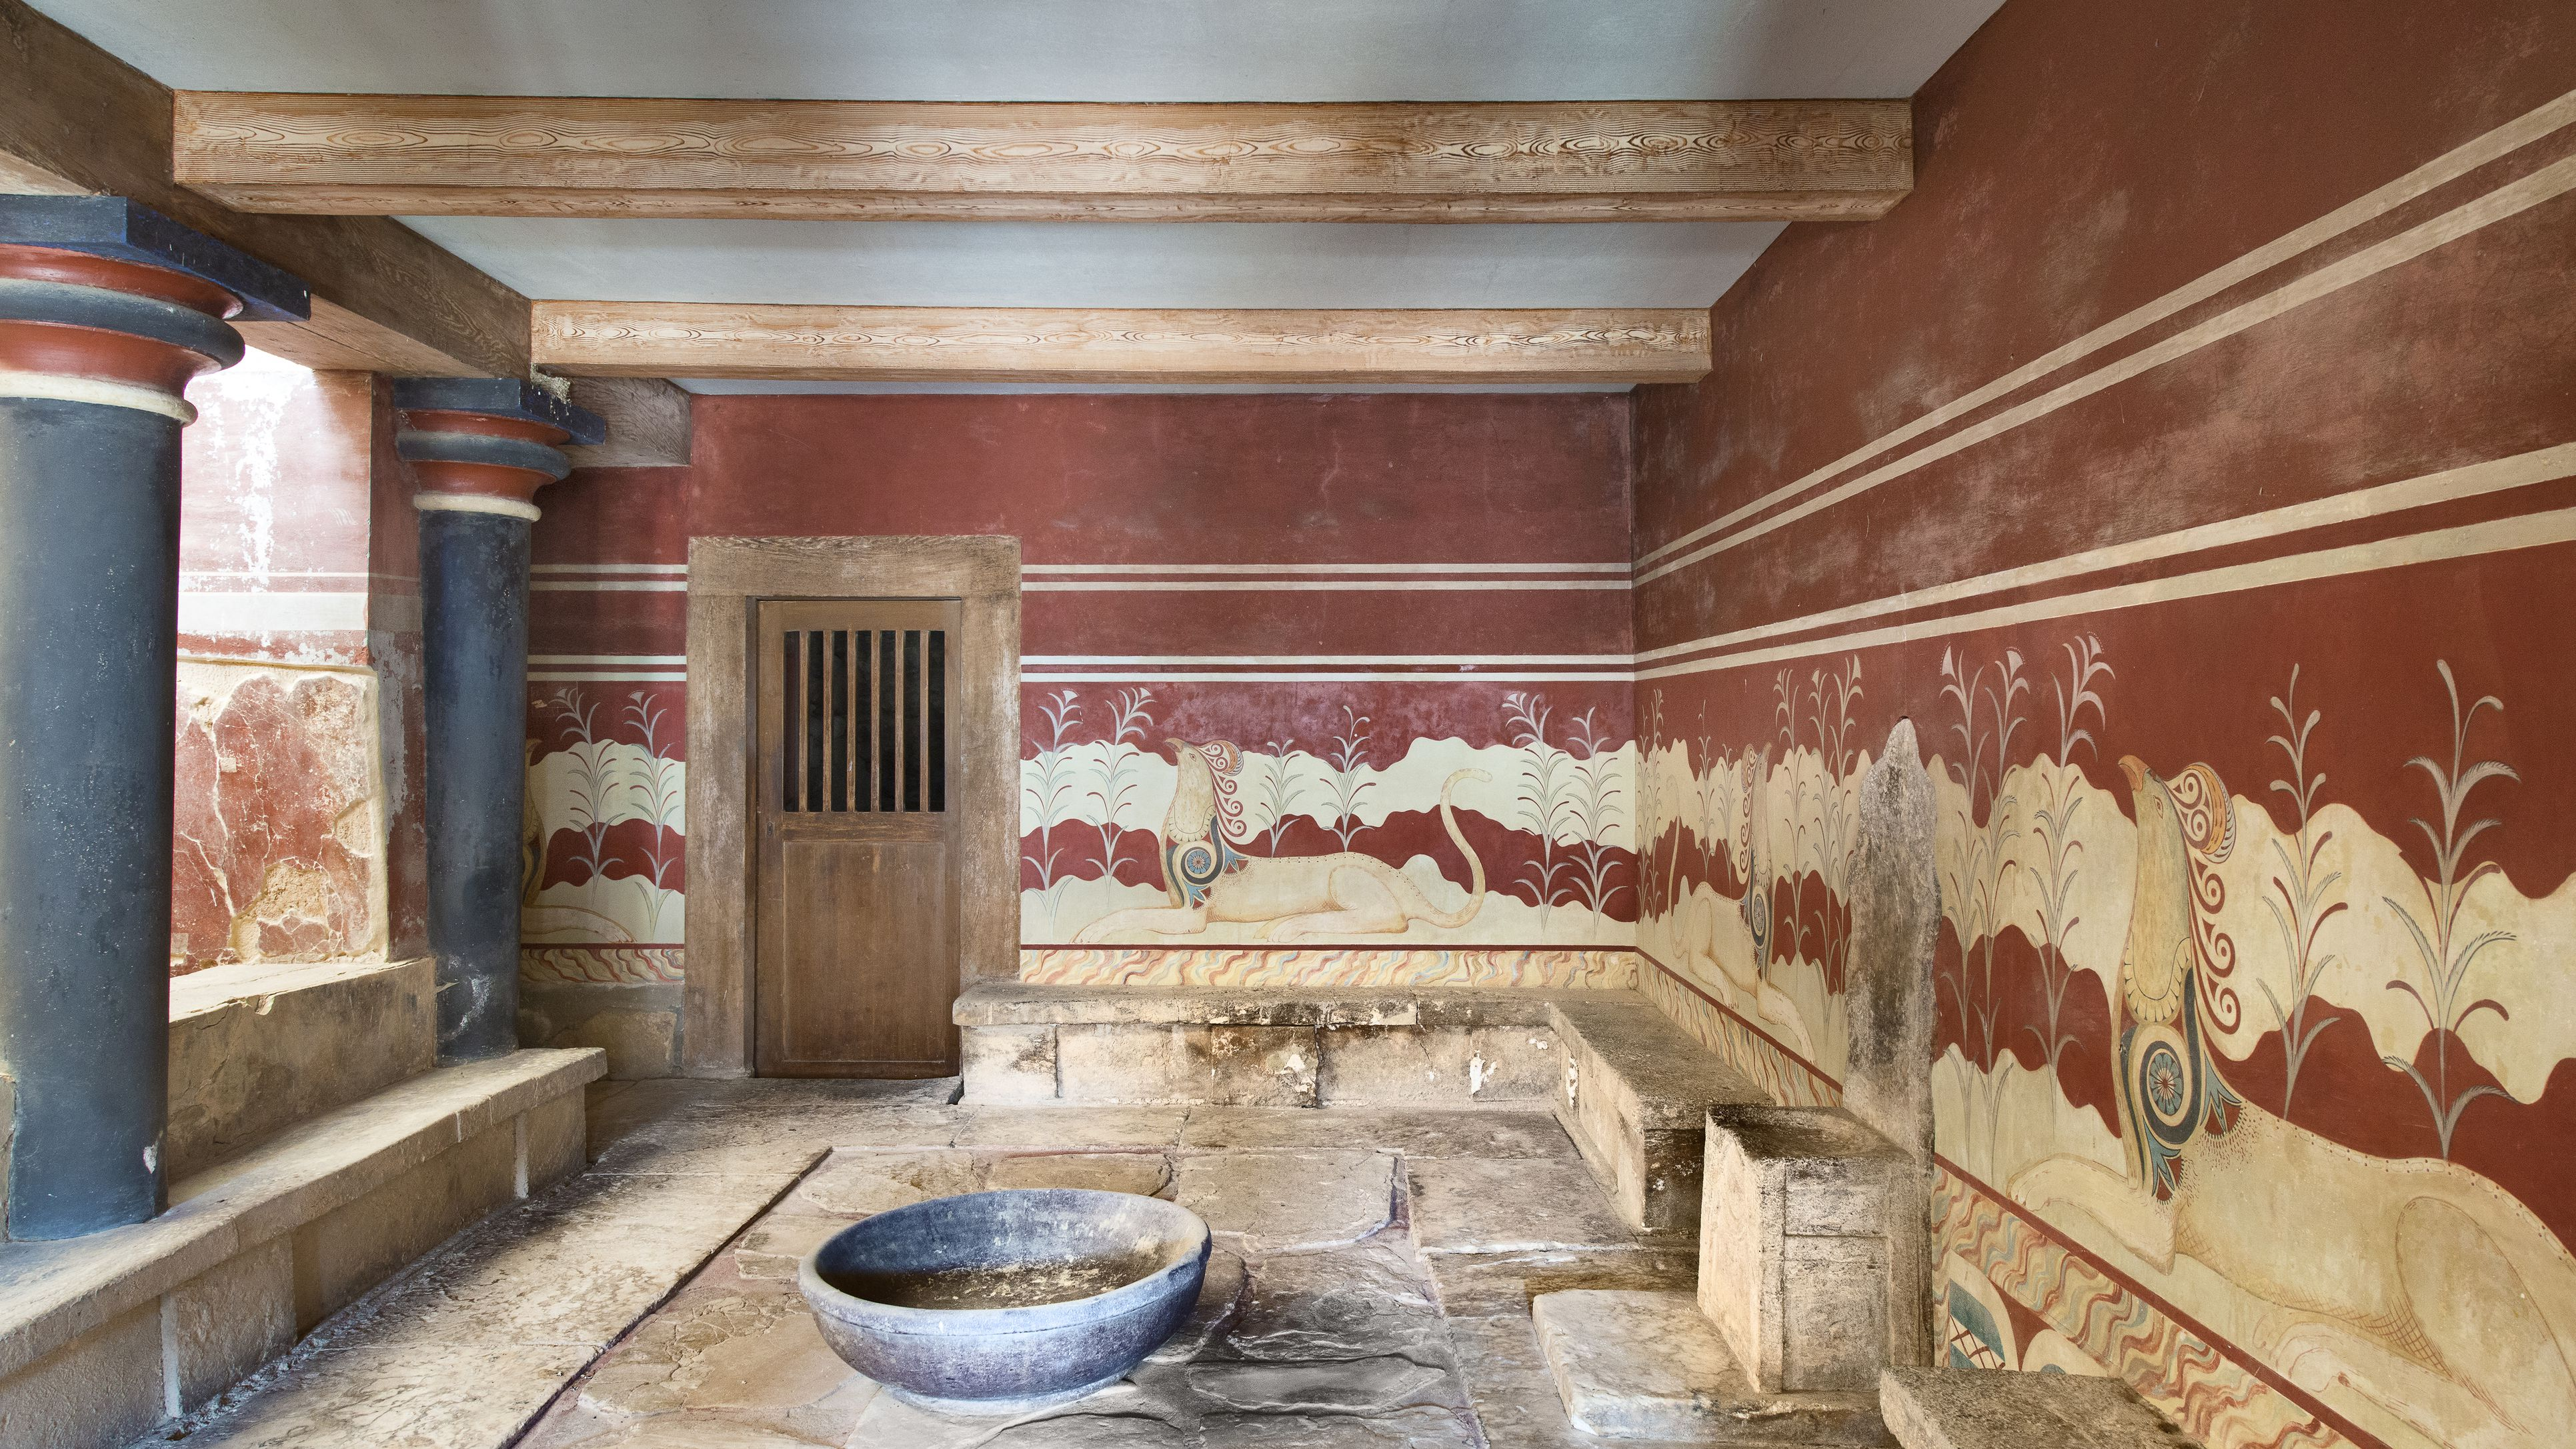 The Palace of Minos at Knossos in Ancient Crete